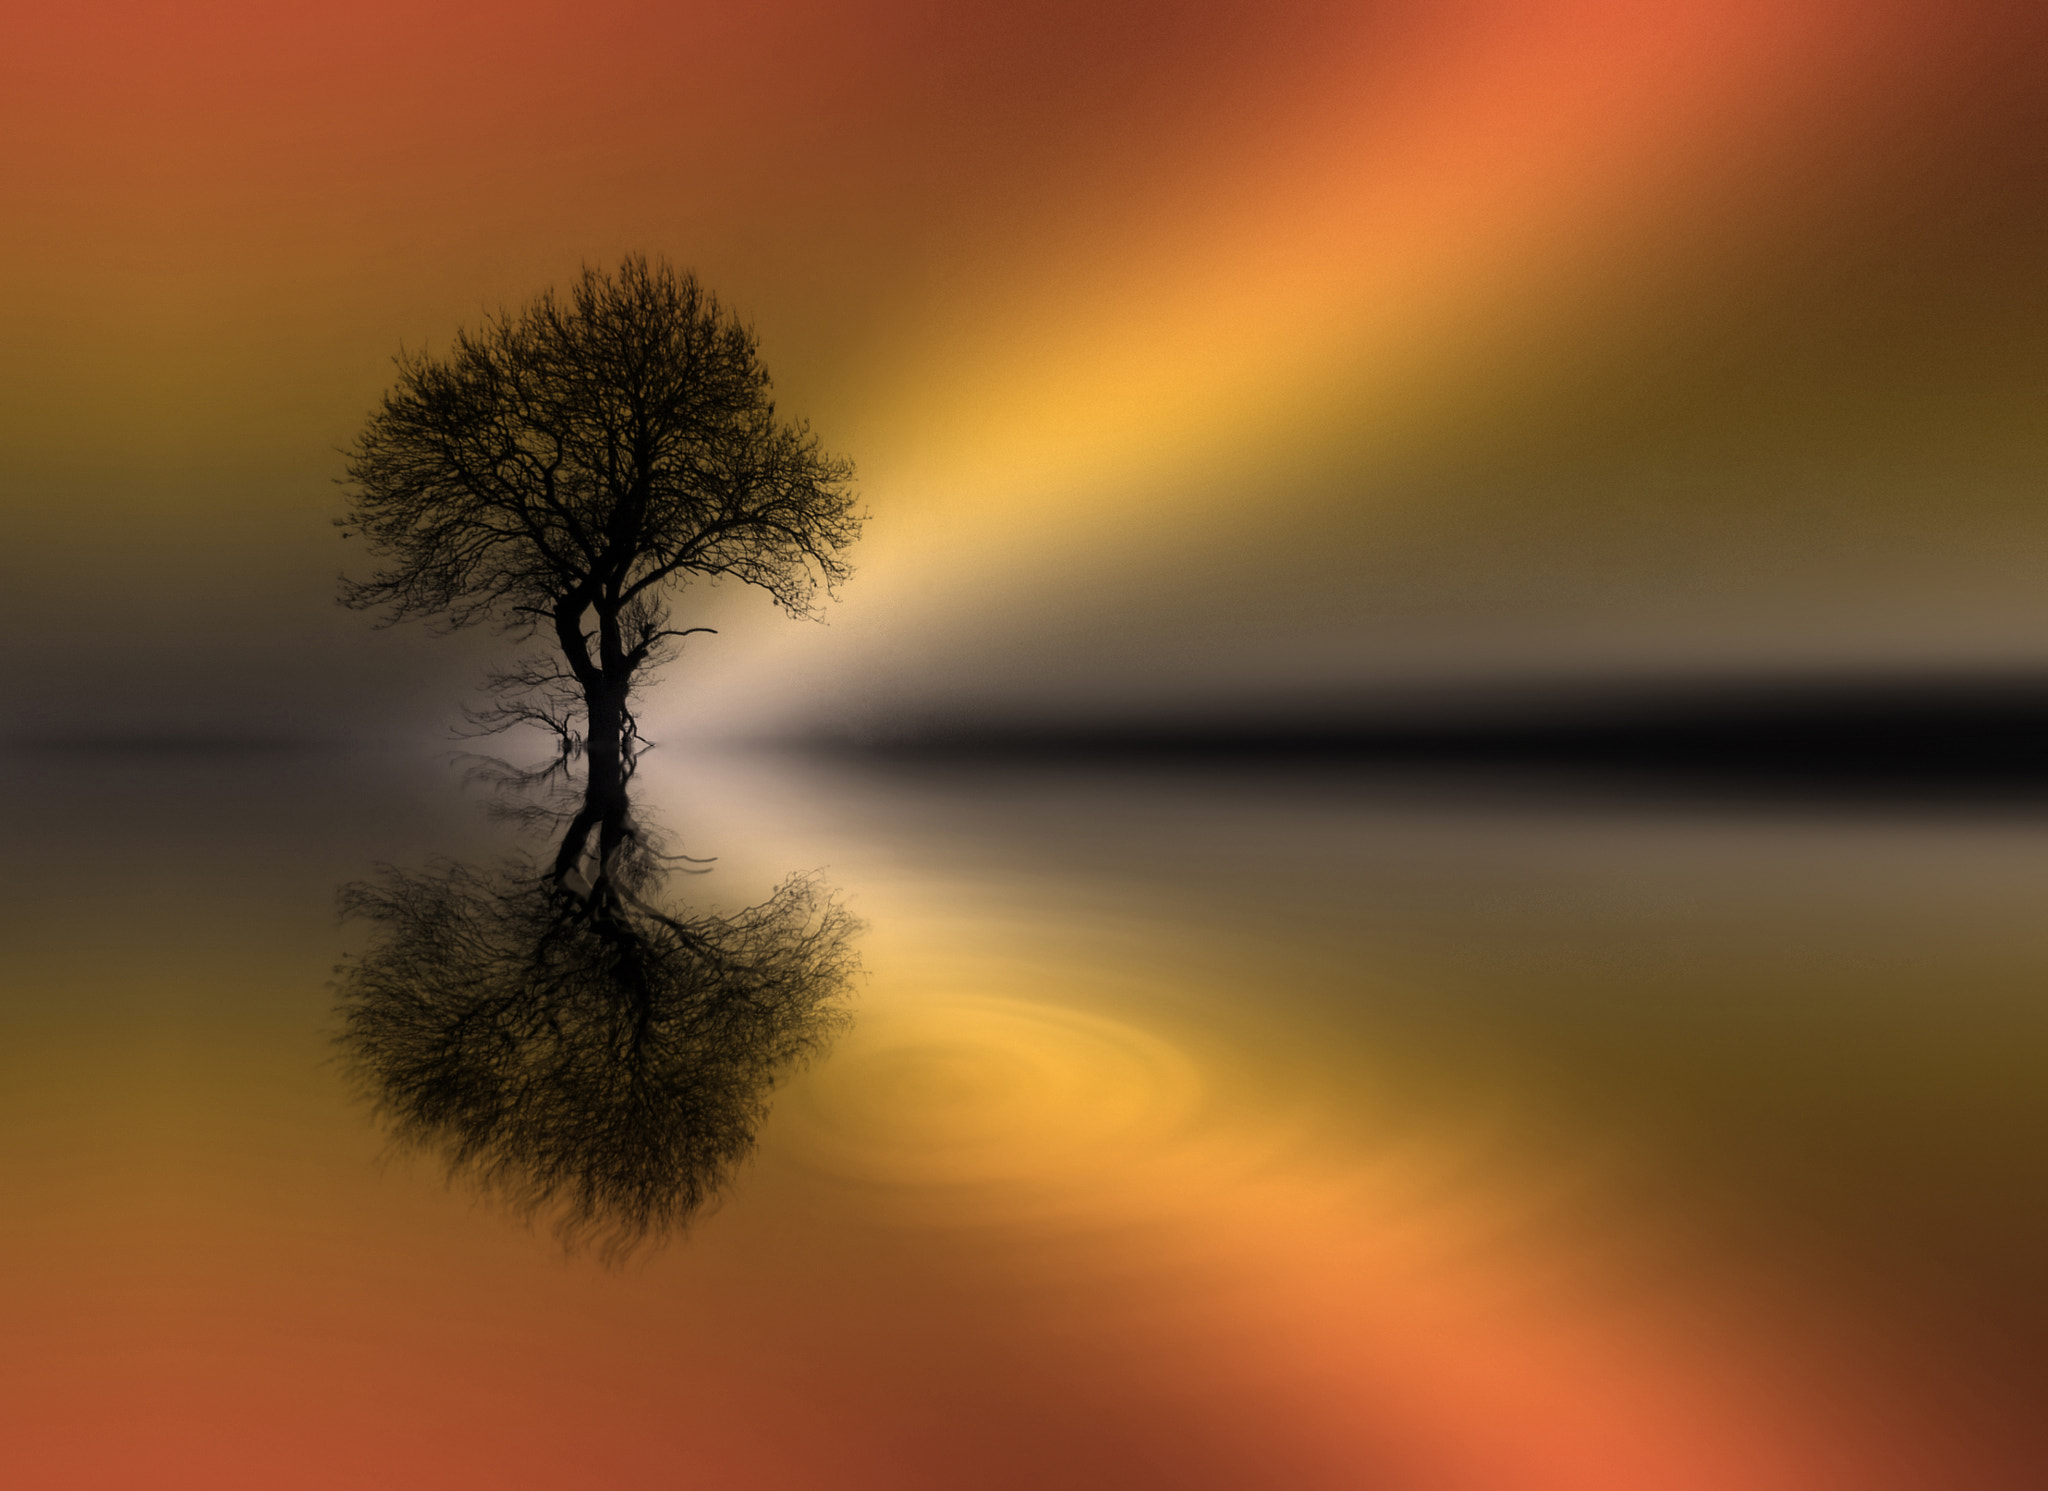 Photograph THE ZEN POOL (golden hour) by KENNY BARKER on 500px